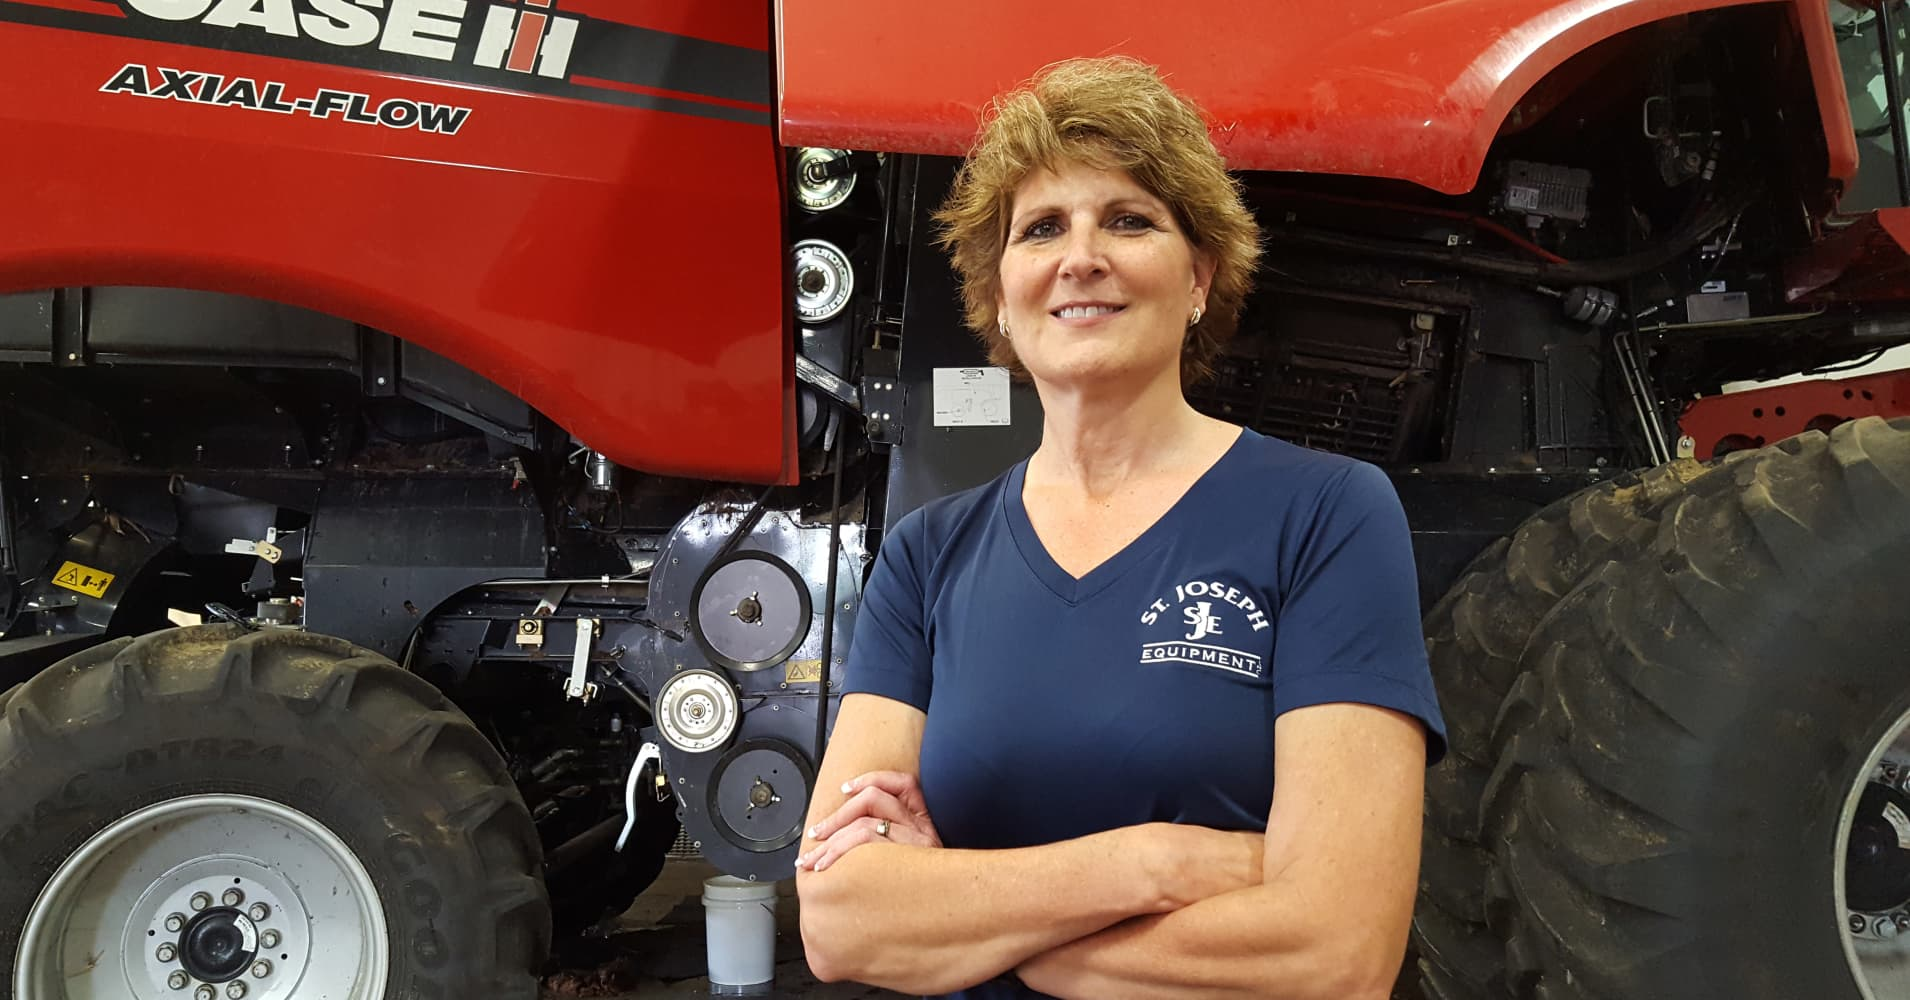 Entrepreneurs like Sherry Wuebben, owner of St. Joseph Equipment in La Crosse, Wisconsin, are grappling with the idea of higher federal wages.